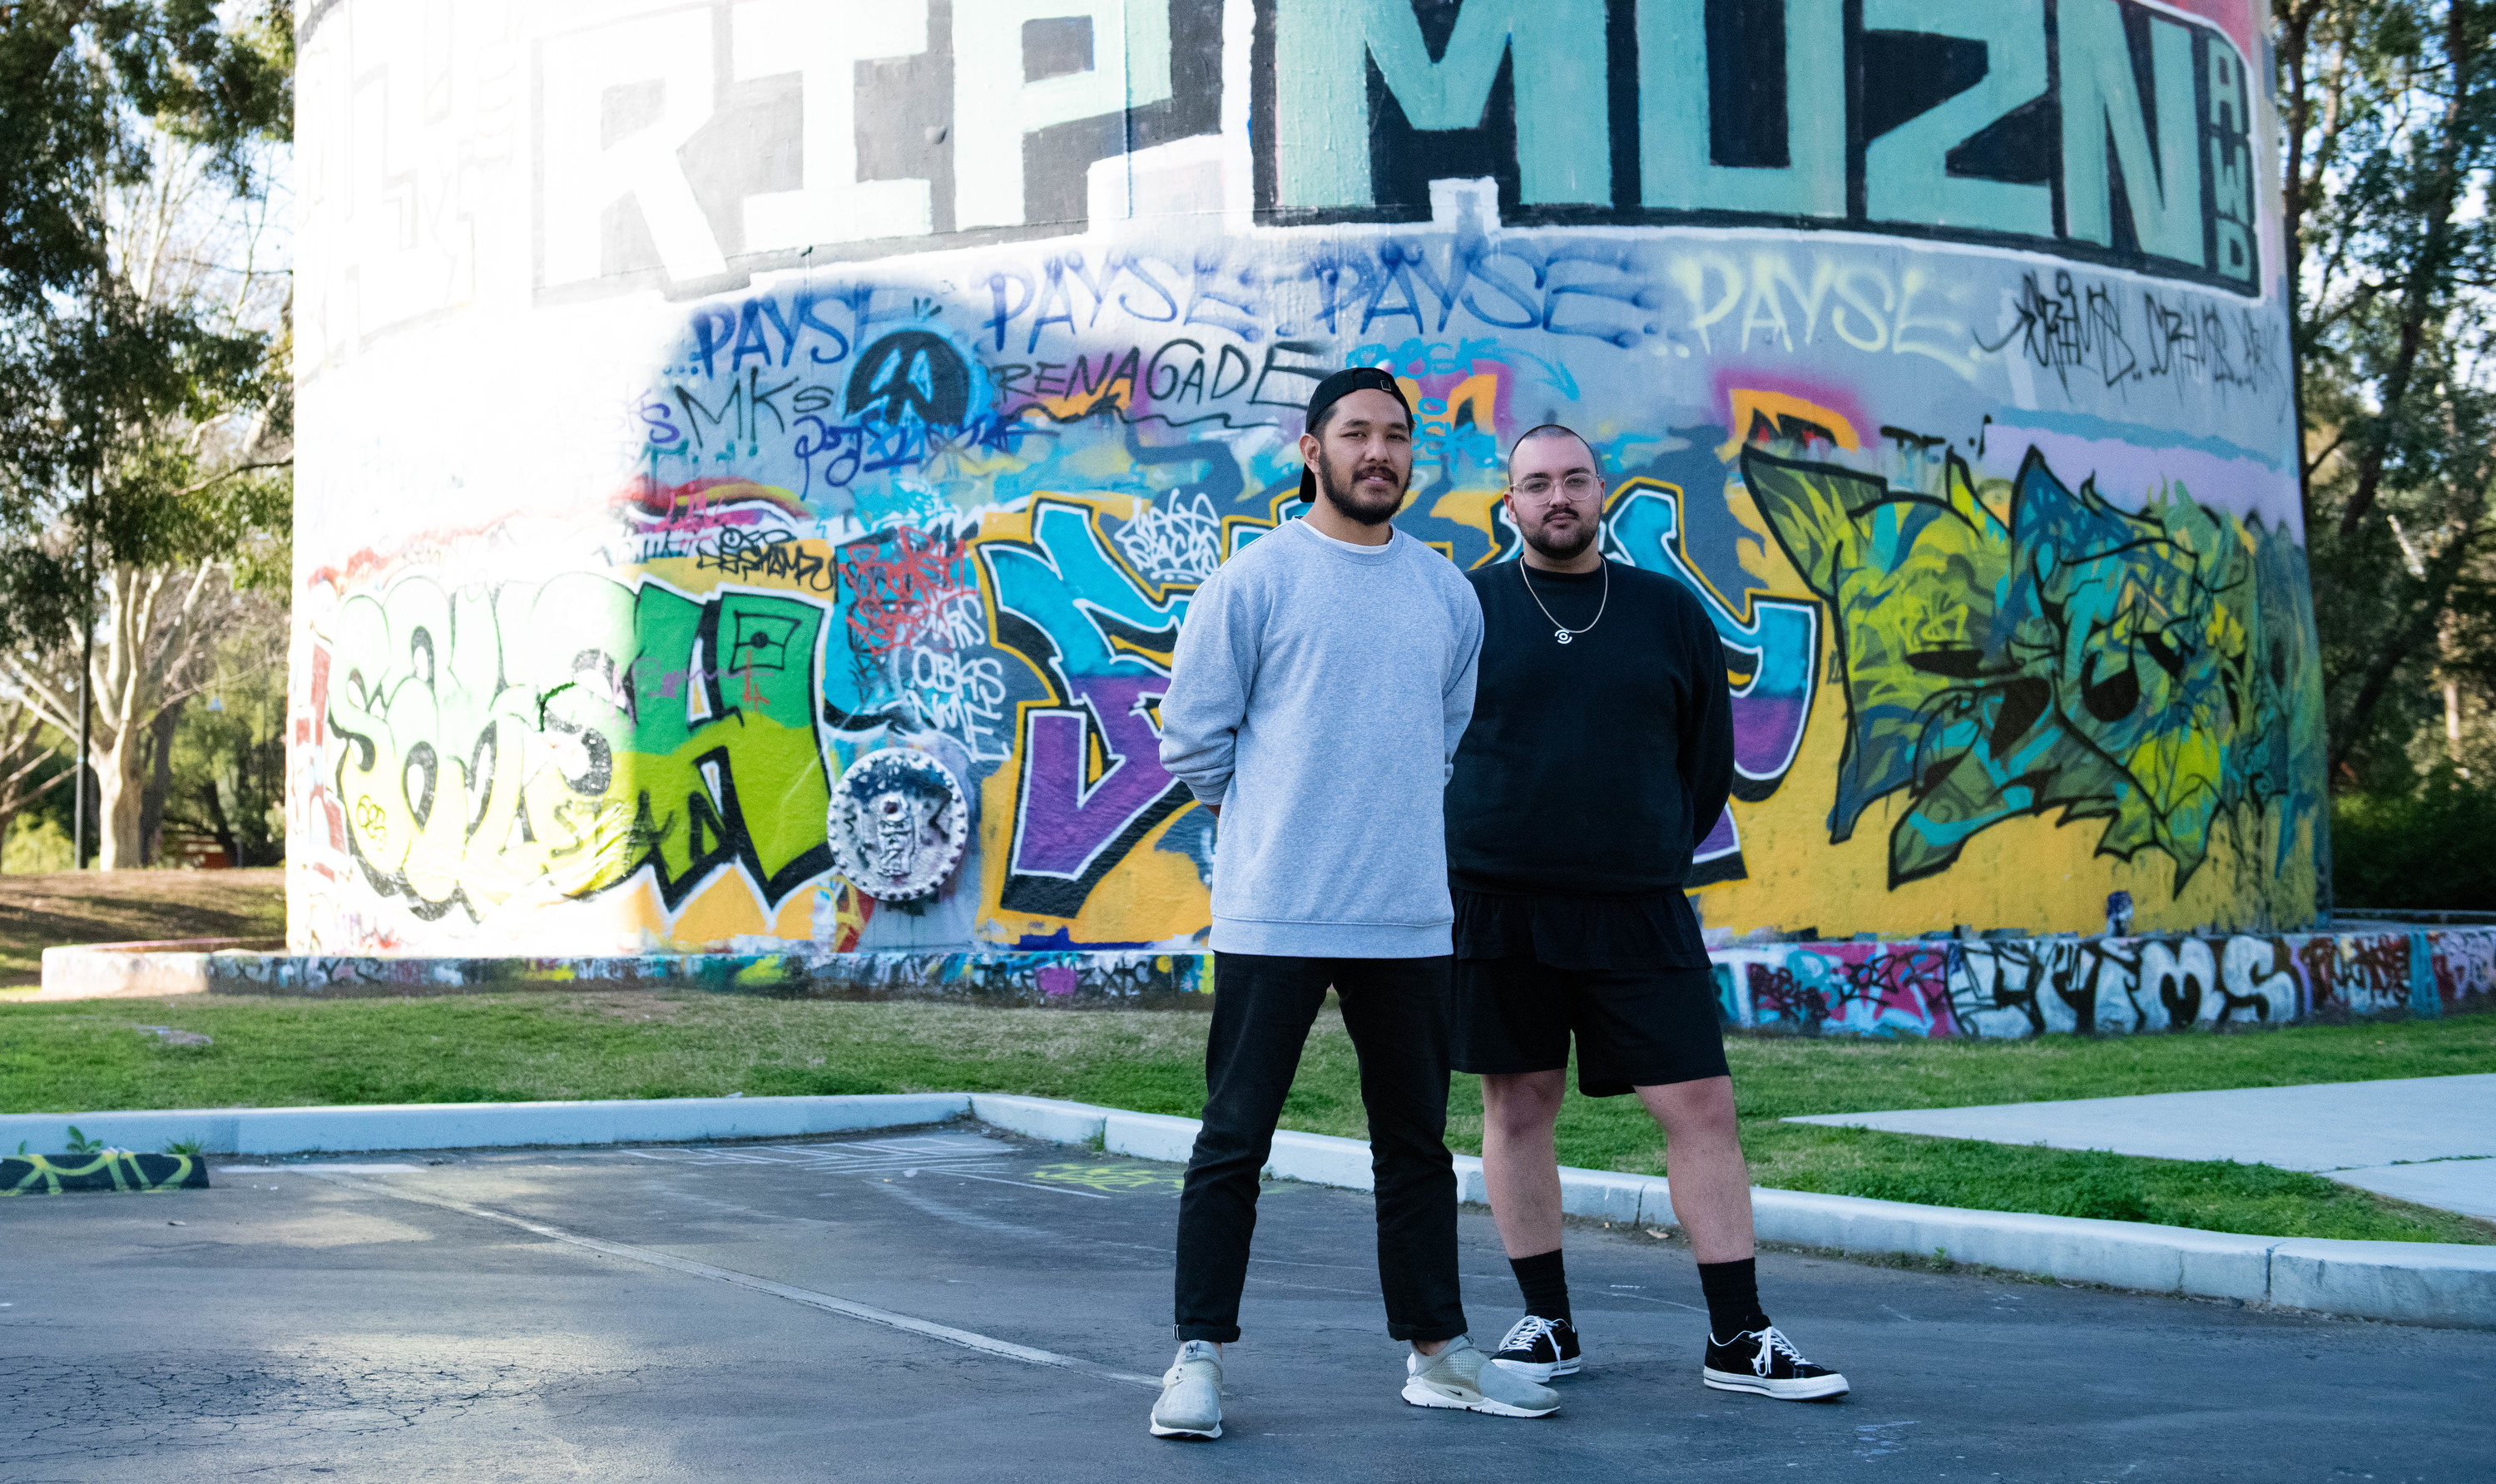 People standing in front of graffiti.